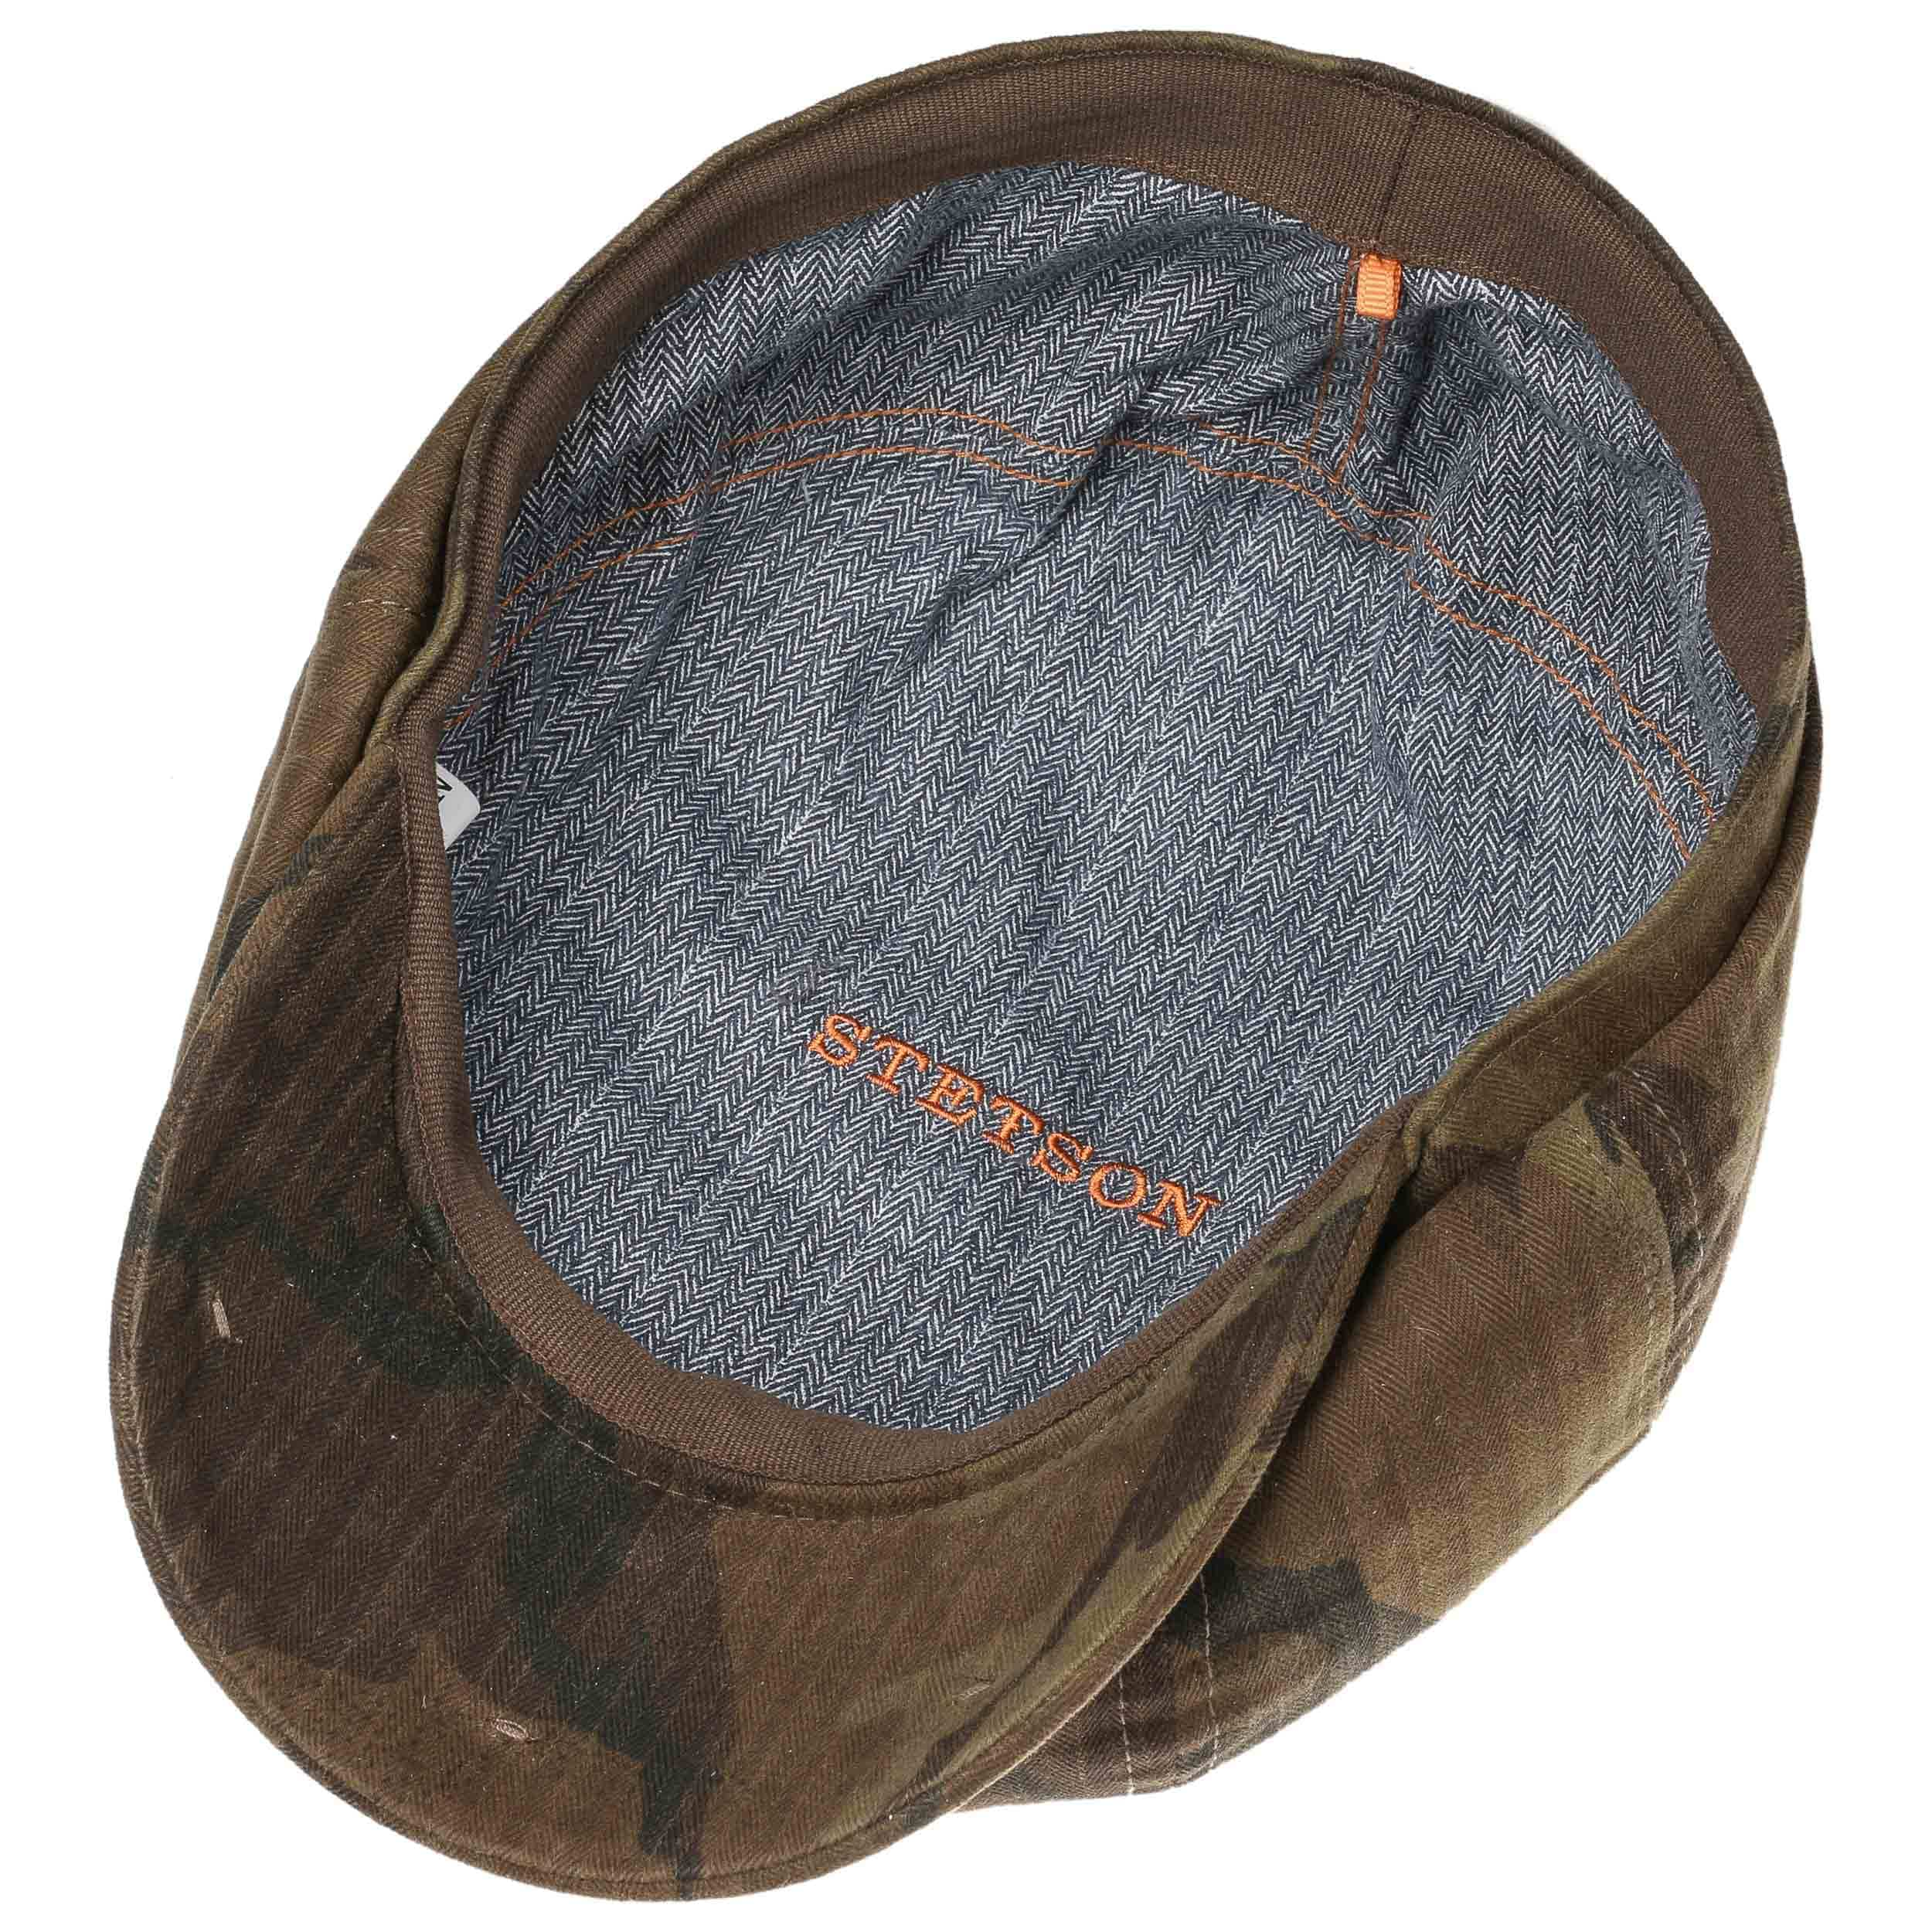 6c19f48efedb7 ... Hatteras Waxed Cotton Camo Flat Cap by Stetson - camouflage 2 ...